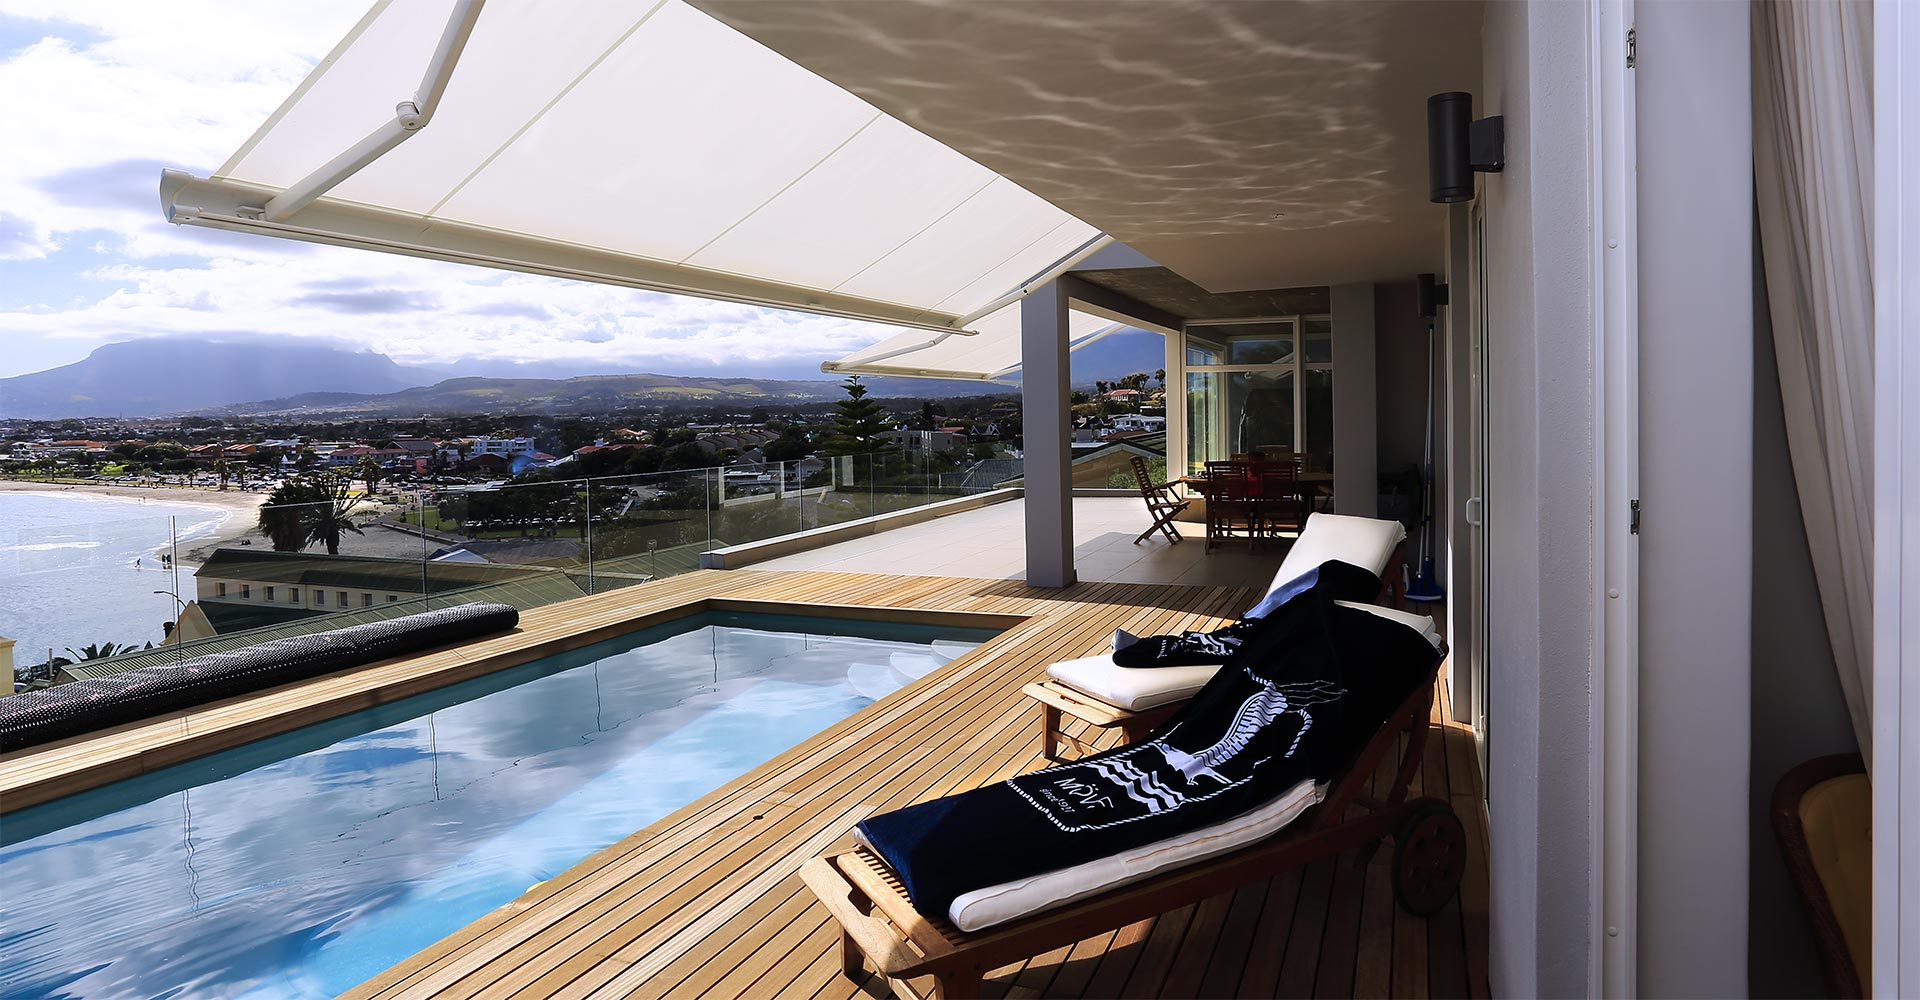 Sundial - Sun Control Experts - South Africa